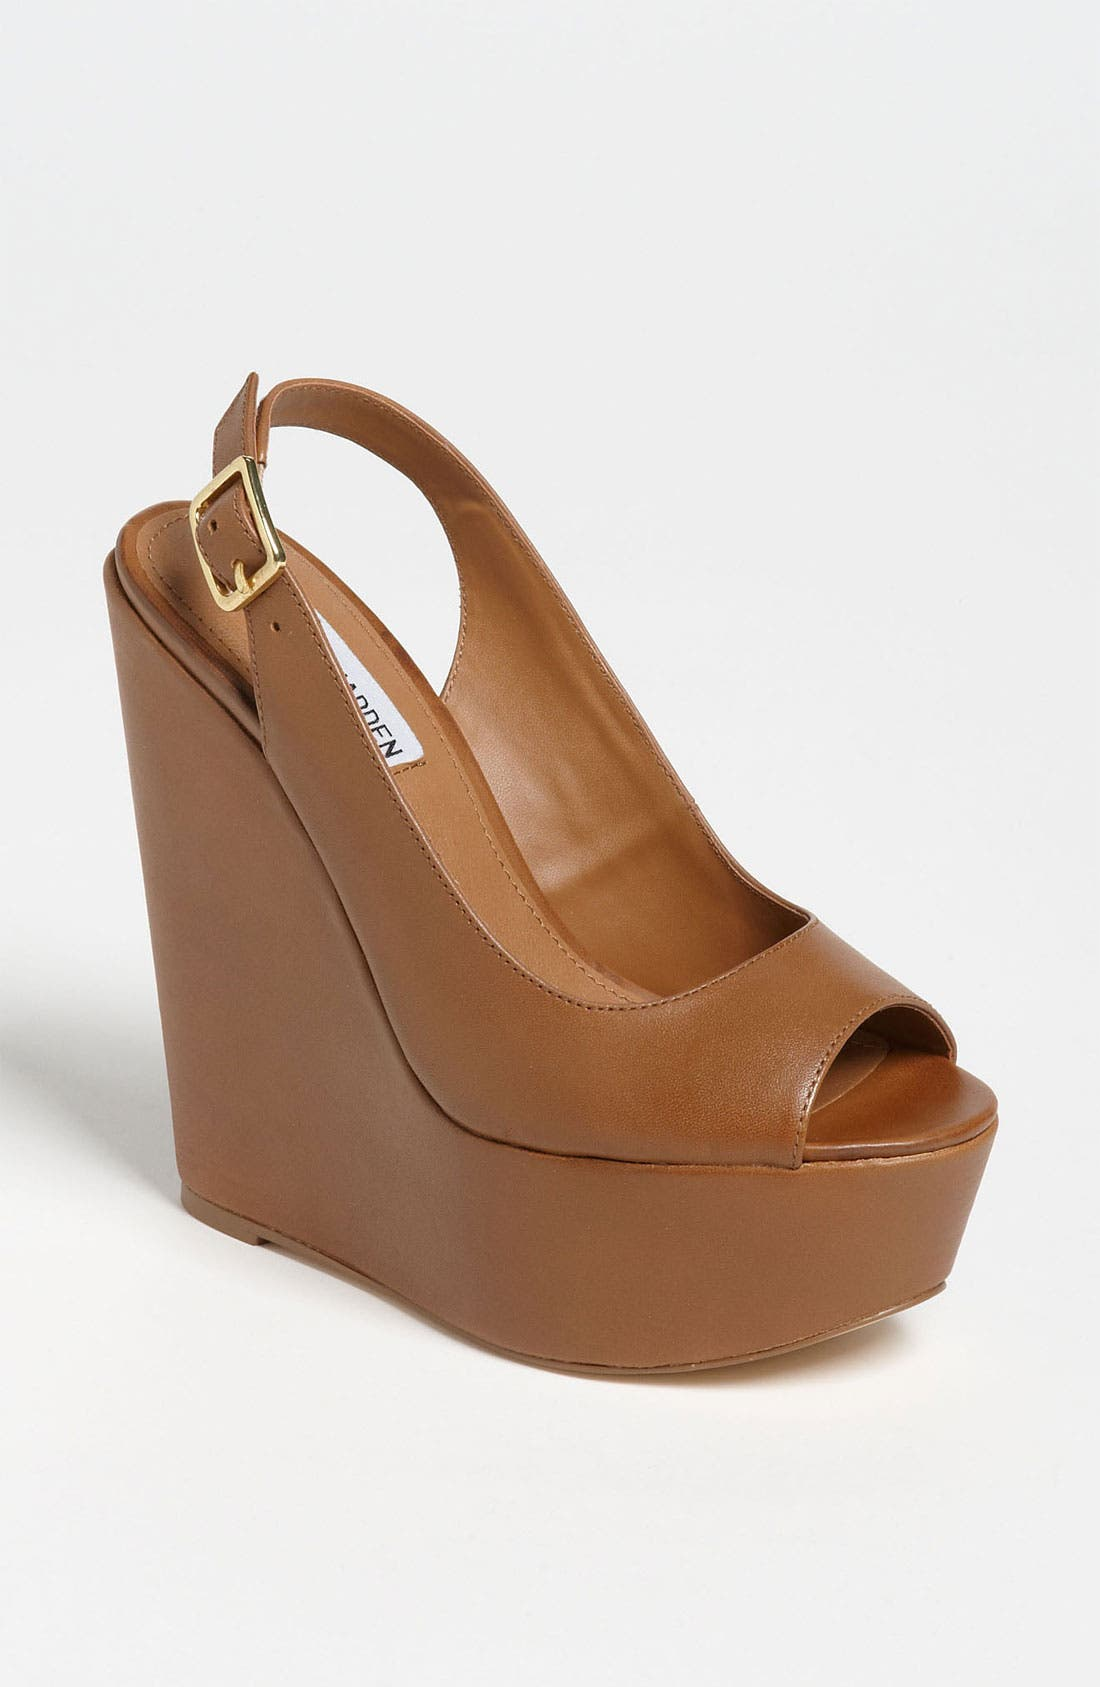 Alternate Image 1 Selected - Steve Madden 'Comotion' Wedge Sandal